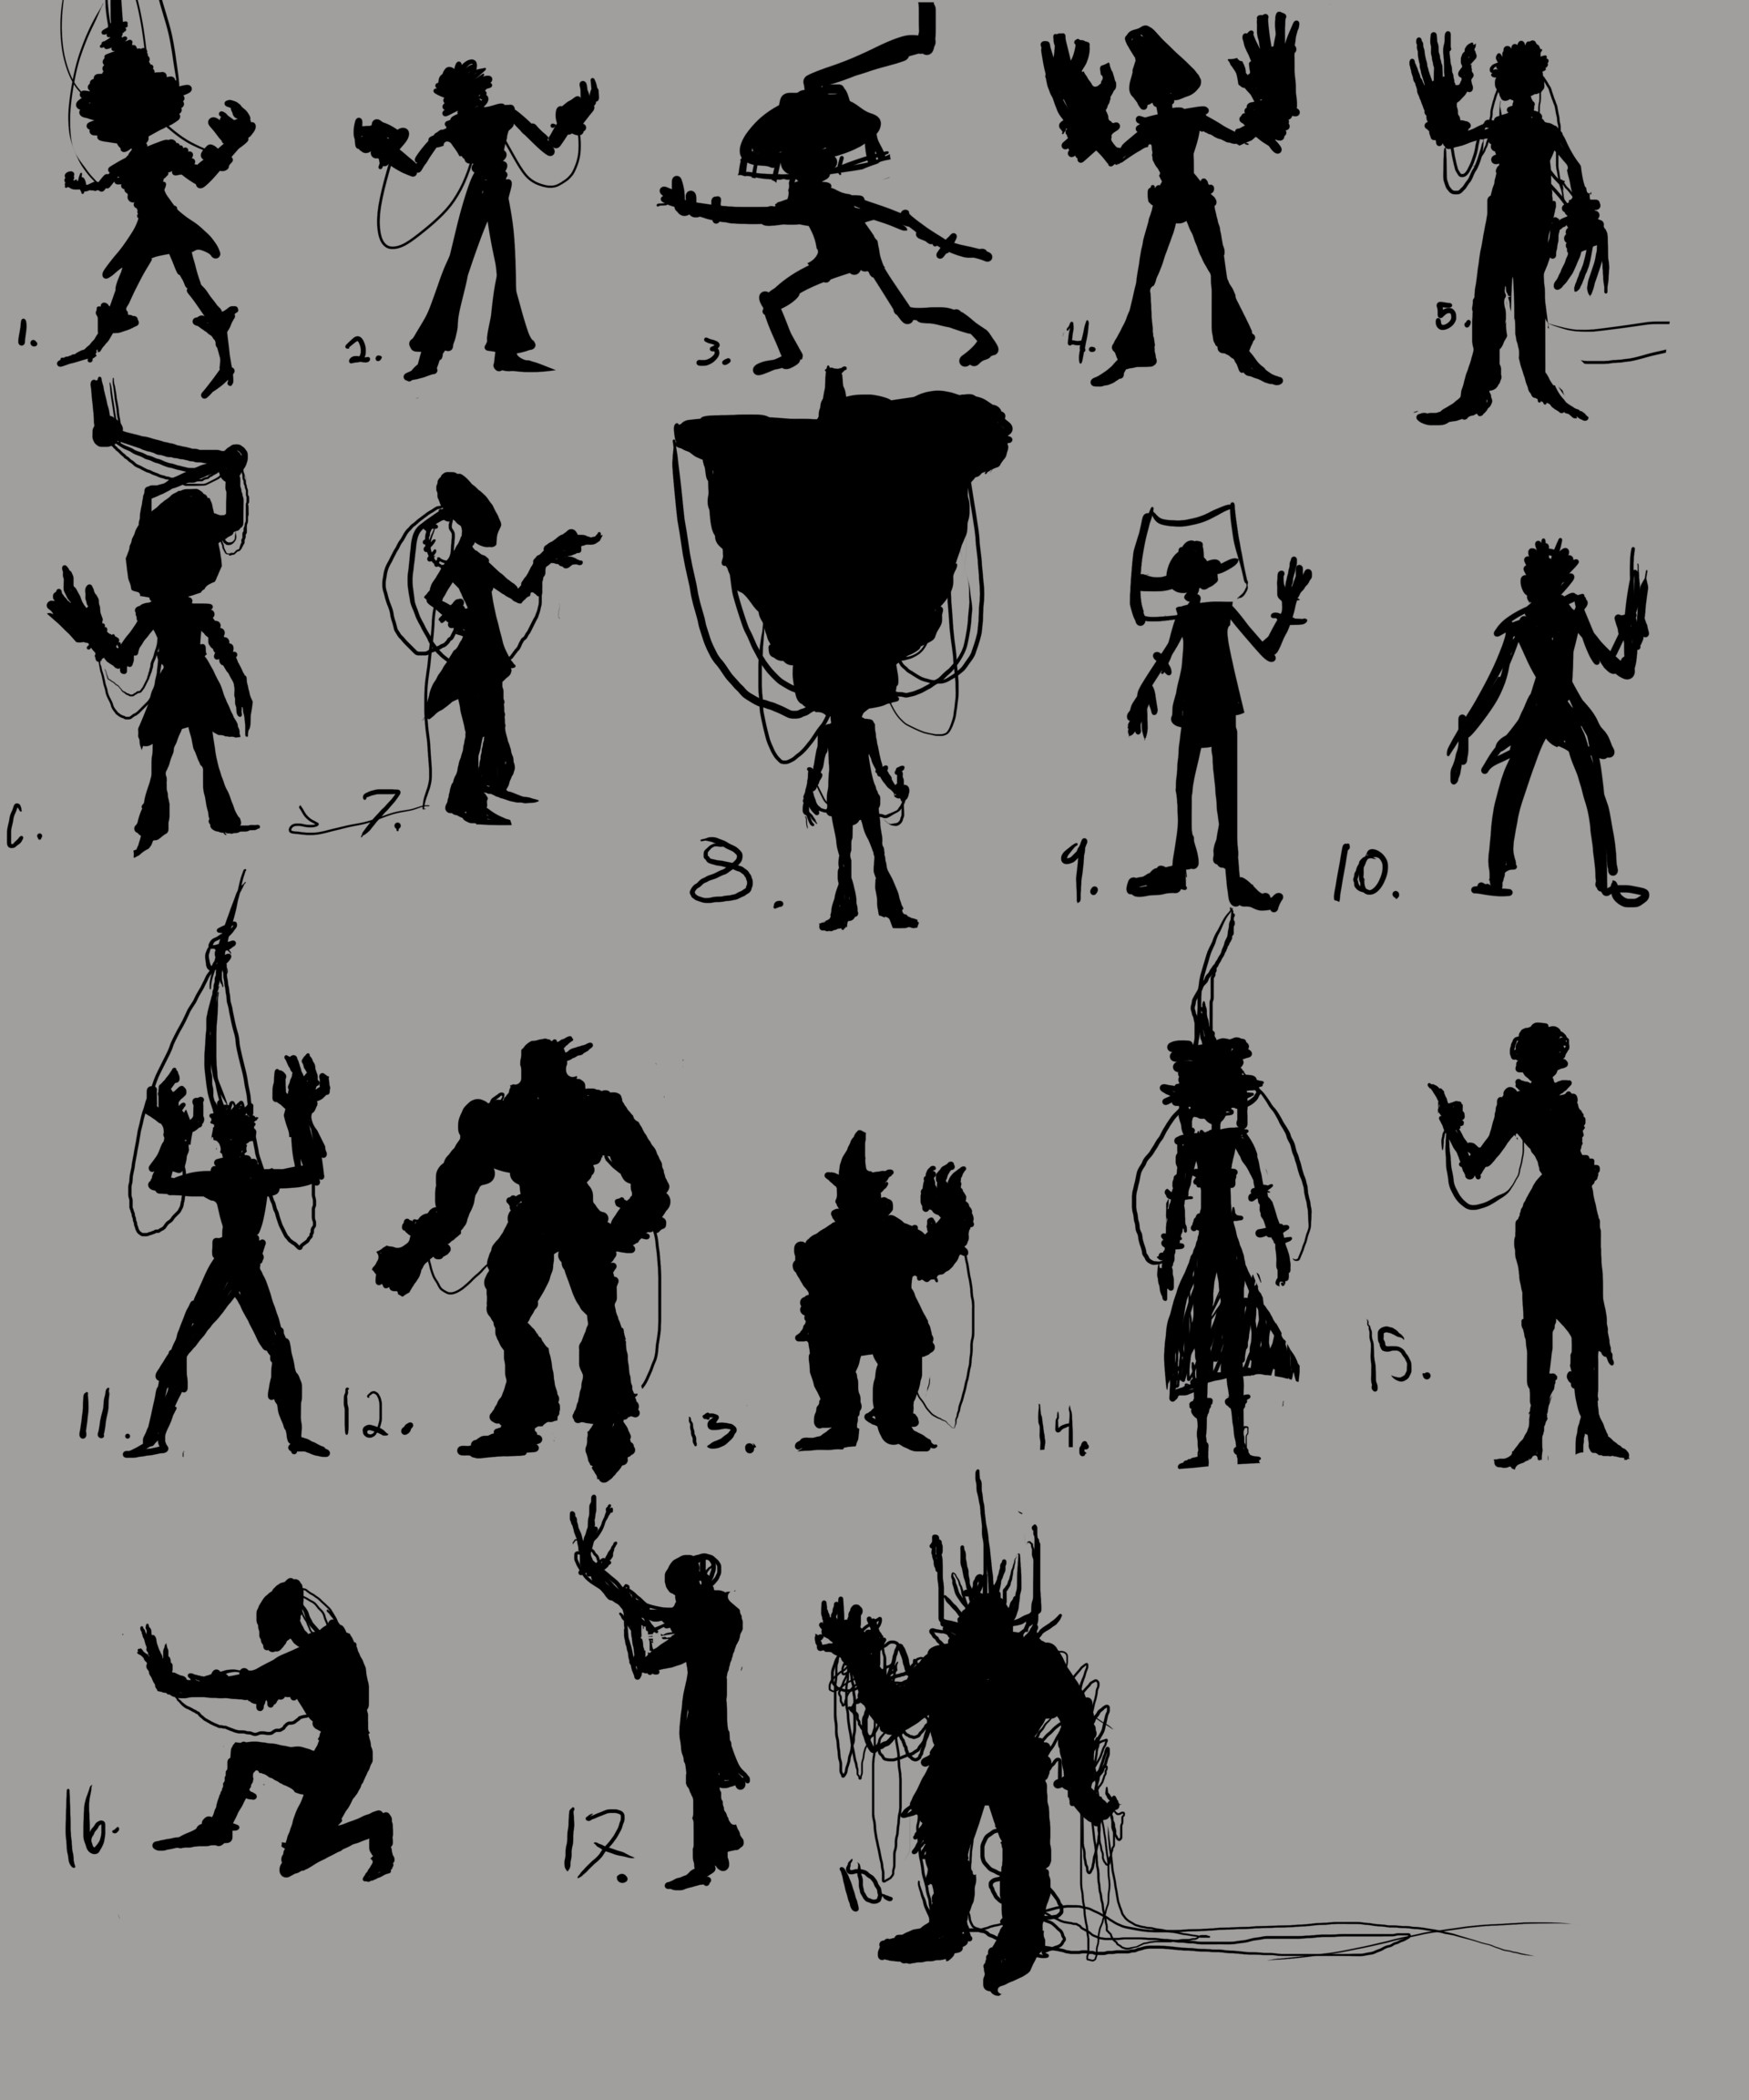 Silhouettes. A few I gave up on half way though and moved on. I ended up choosing #8.